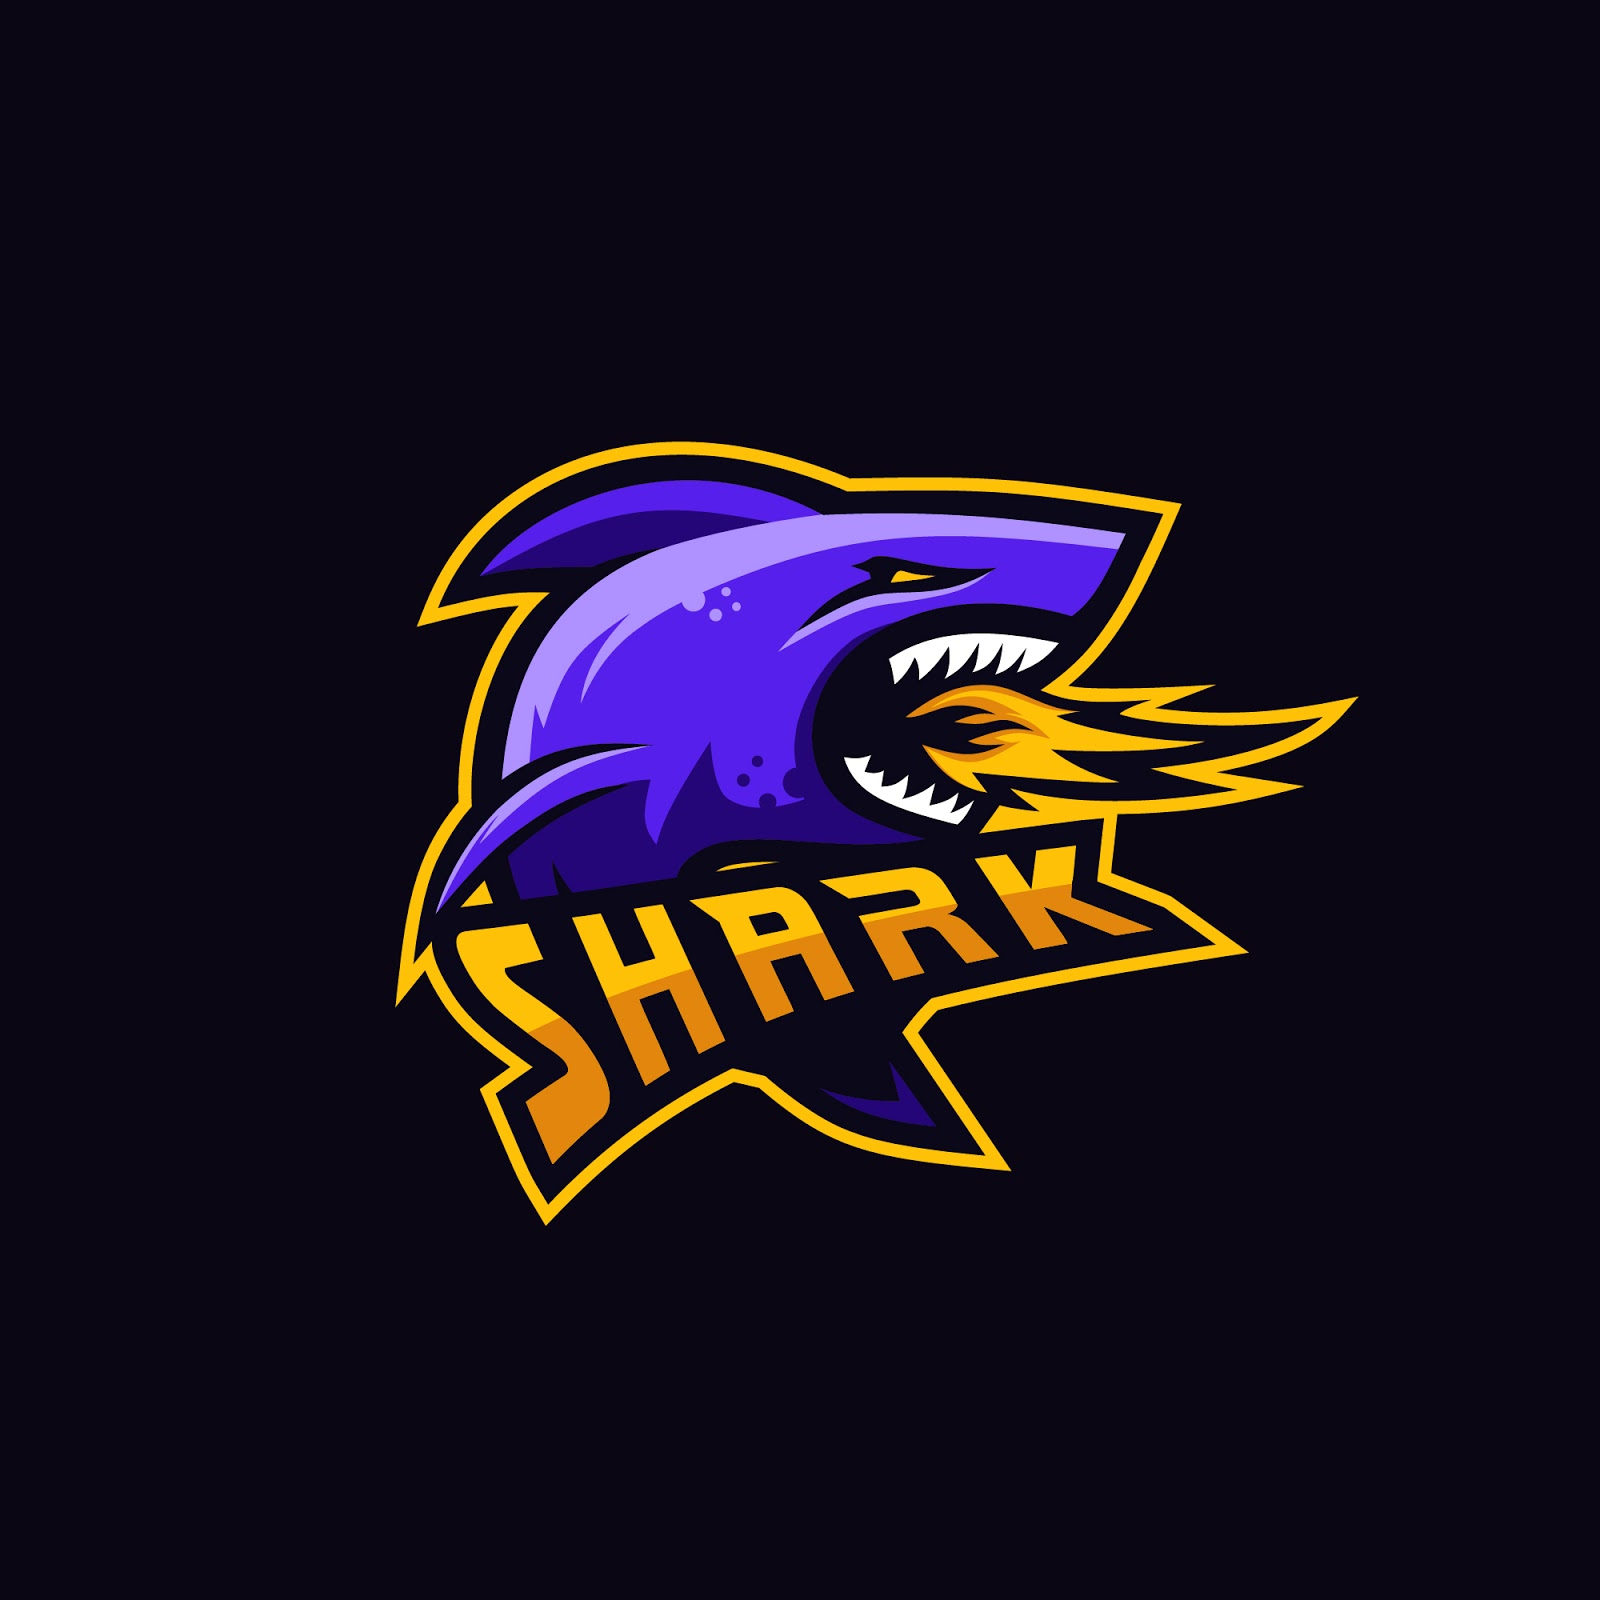 Shark Premium Logo Squad Gaming Free Download Vector CDR, AI, EPS and PNG Formats